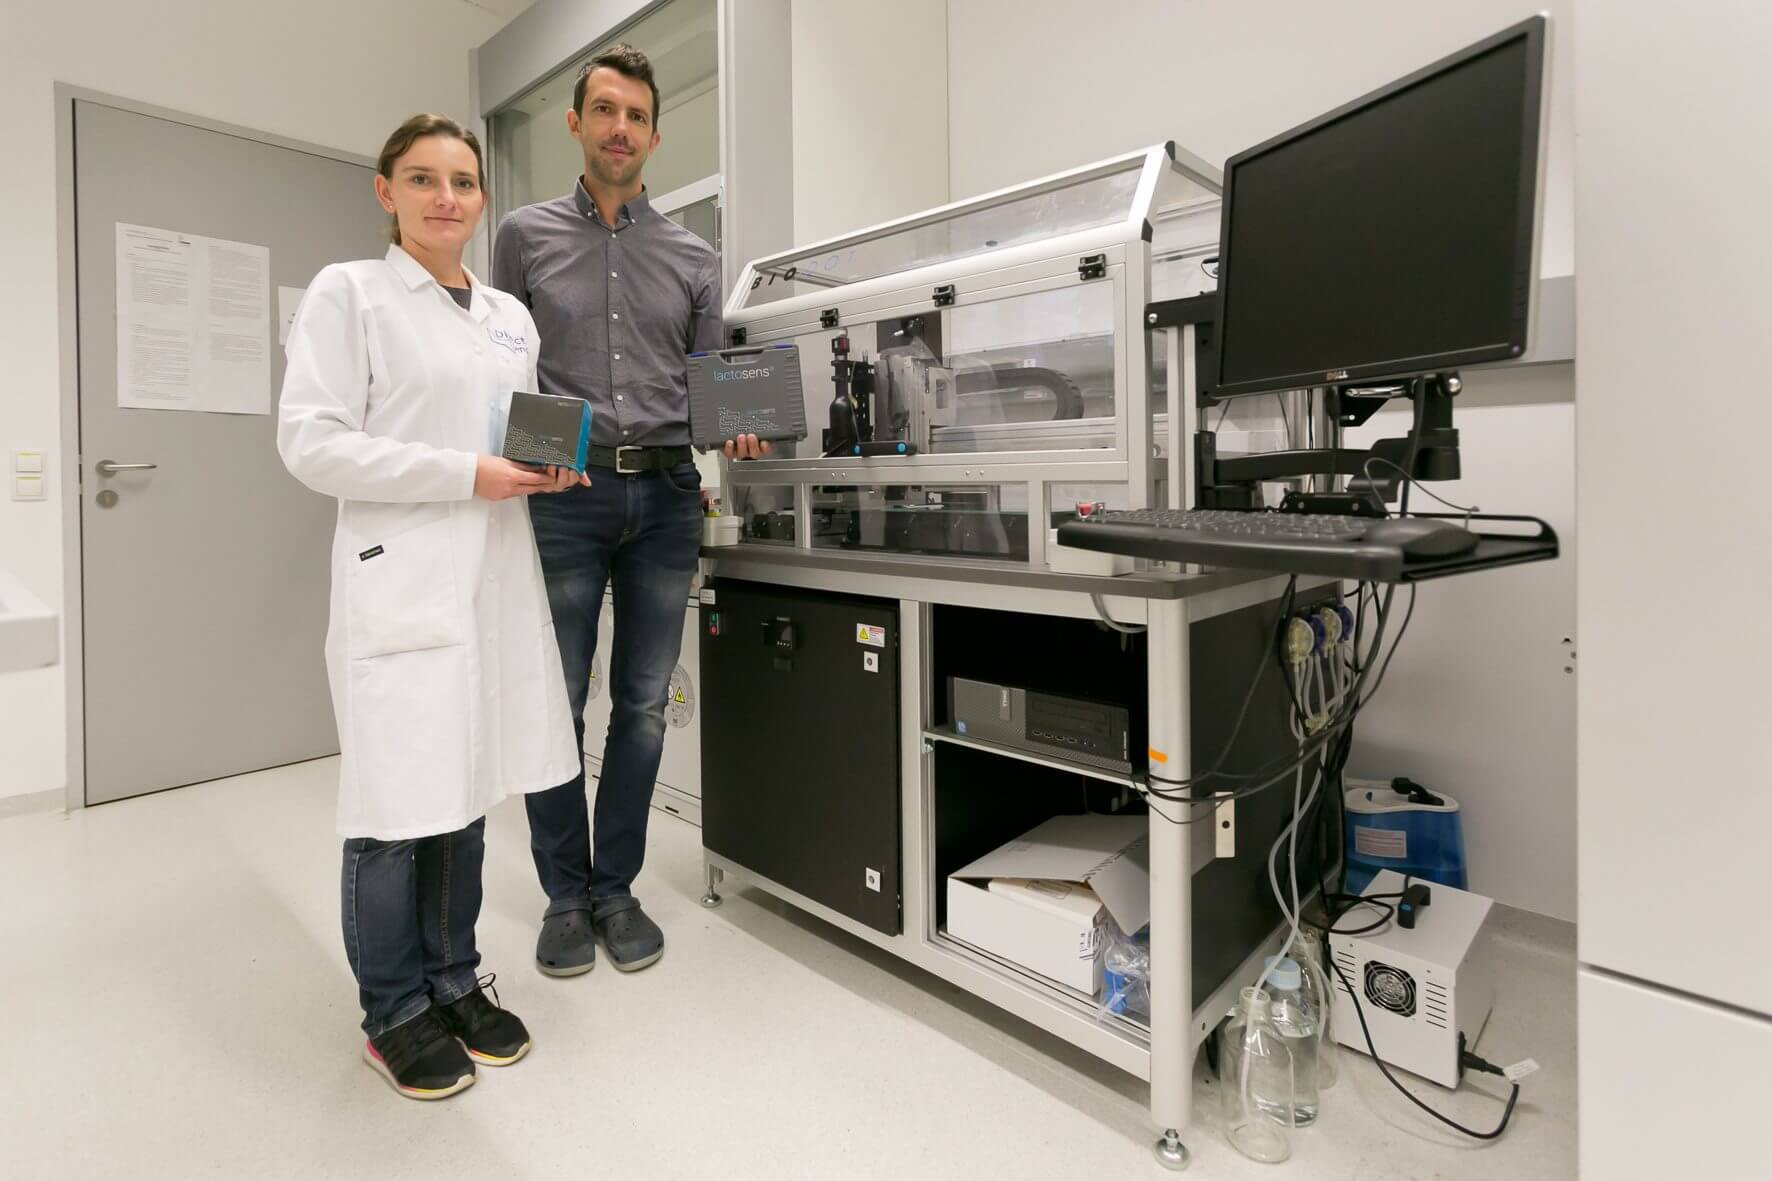 DirectSens GmbH, has selected BioDot's AD3420 BioJet Elite dispensing system to develop and manufacture their 3rd generation biosensors